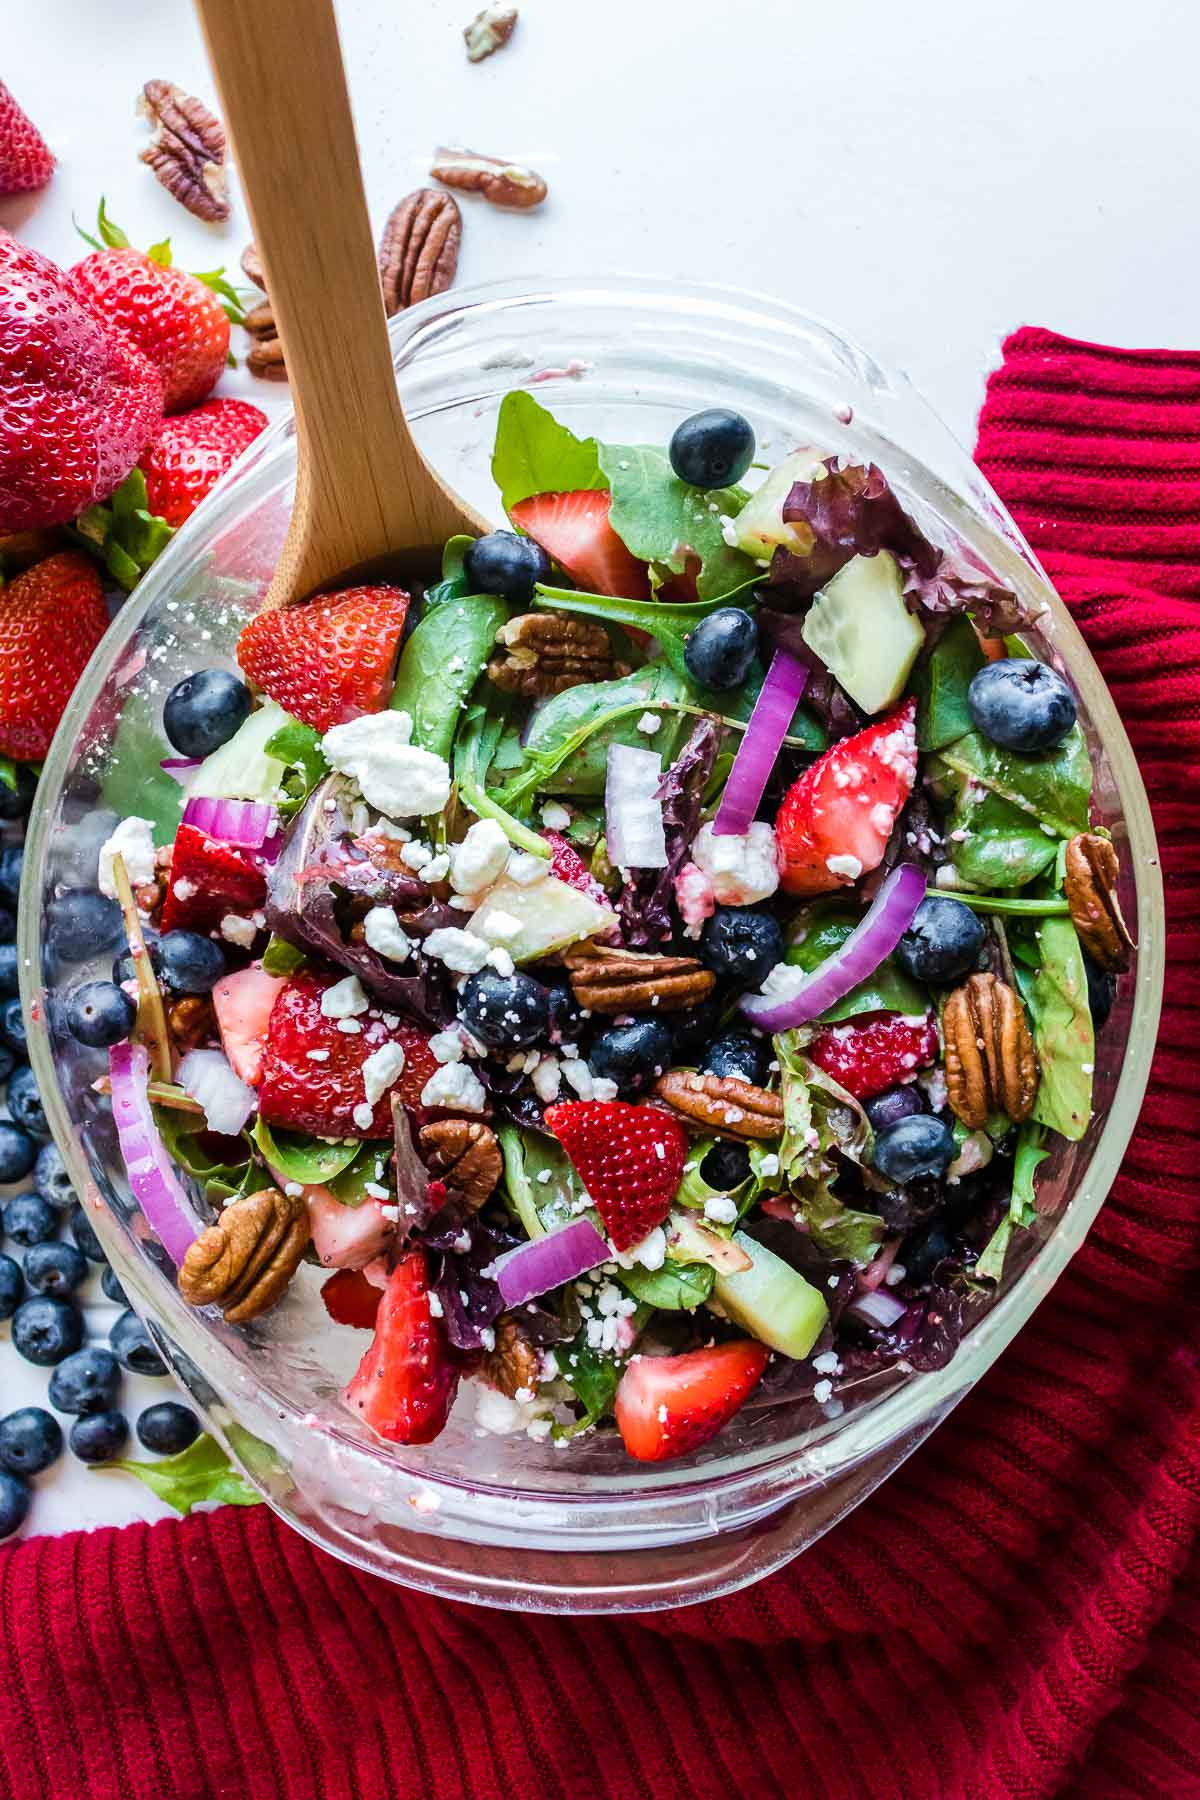 tossed strawberry salad with blueberries, goat cheese, red onions in a clear glass bowl